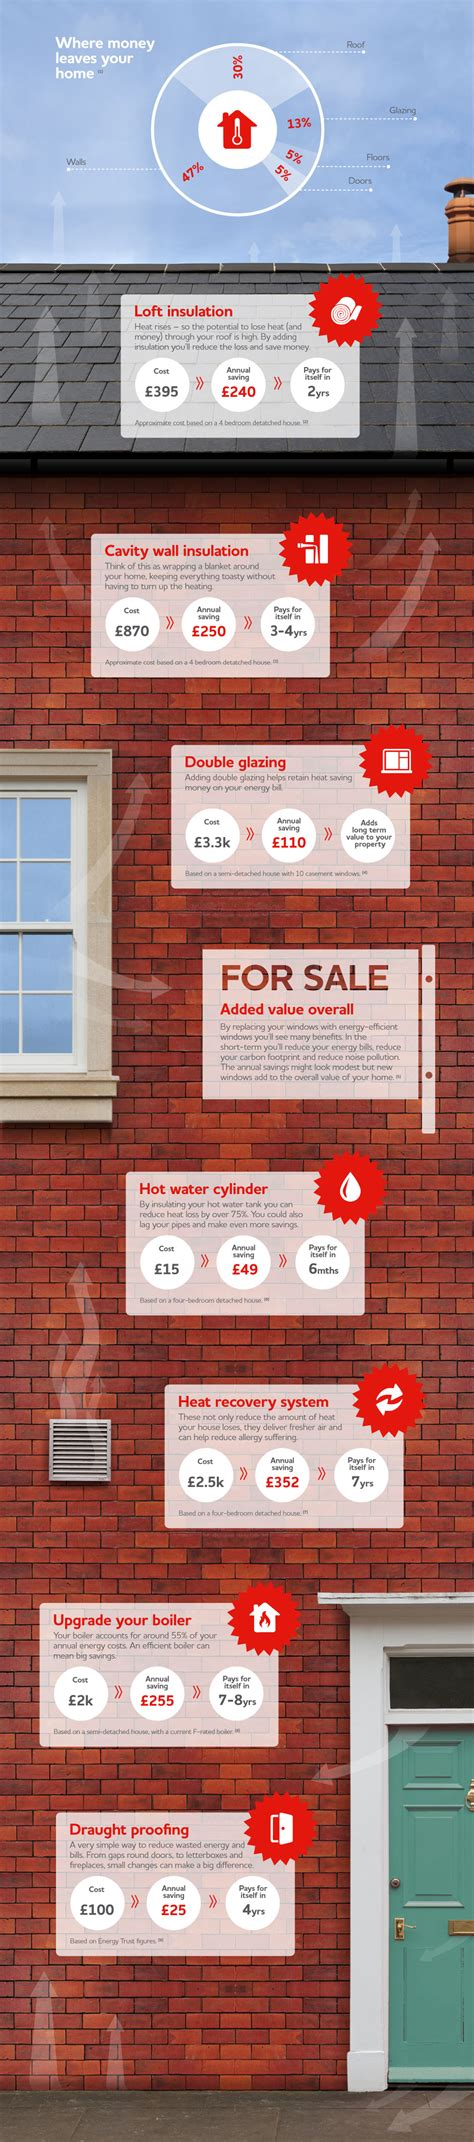 home improvements that could save you money clydesdale bank